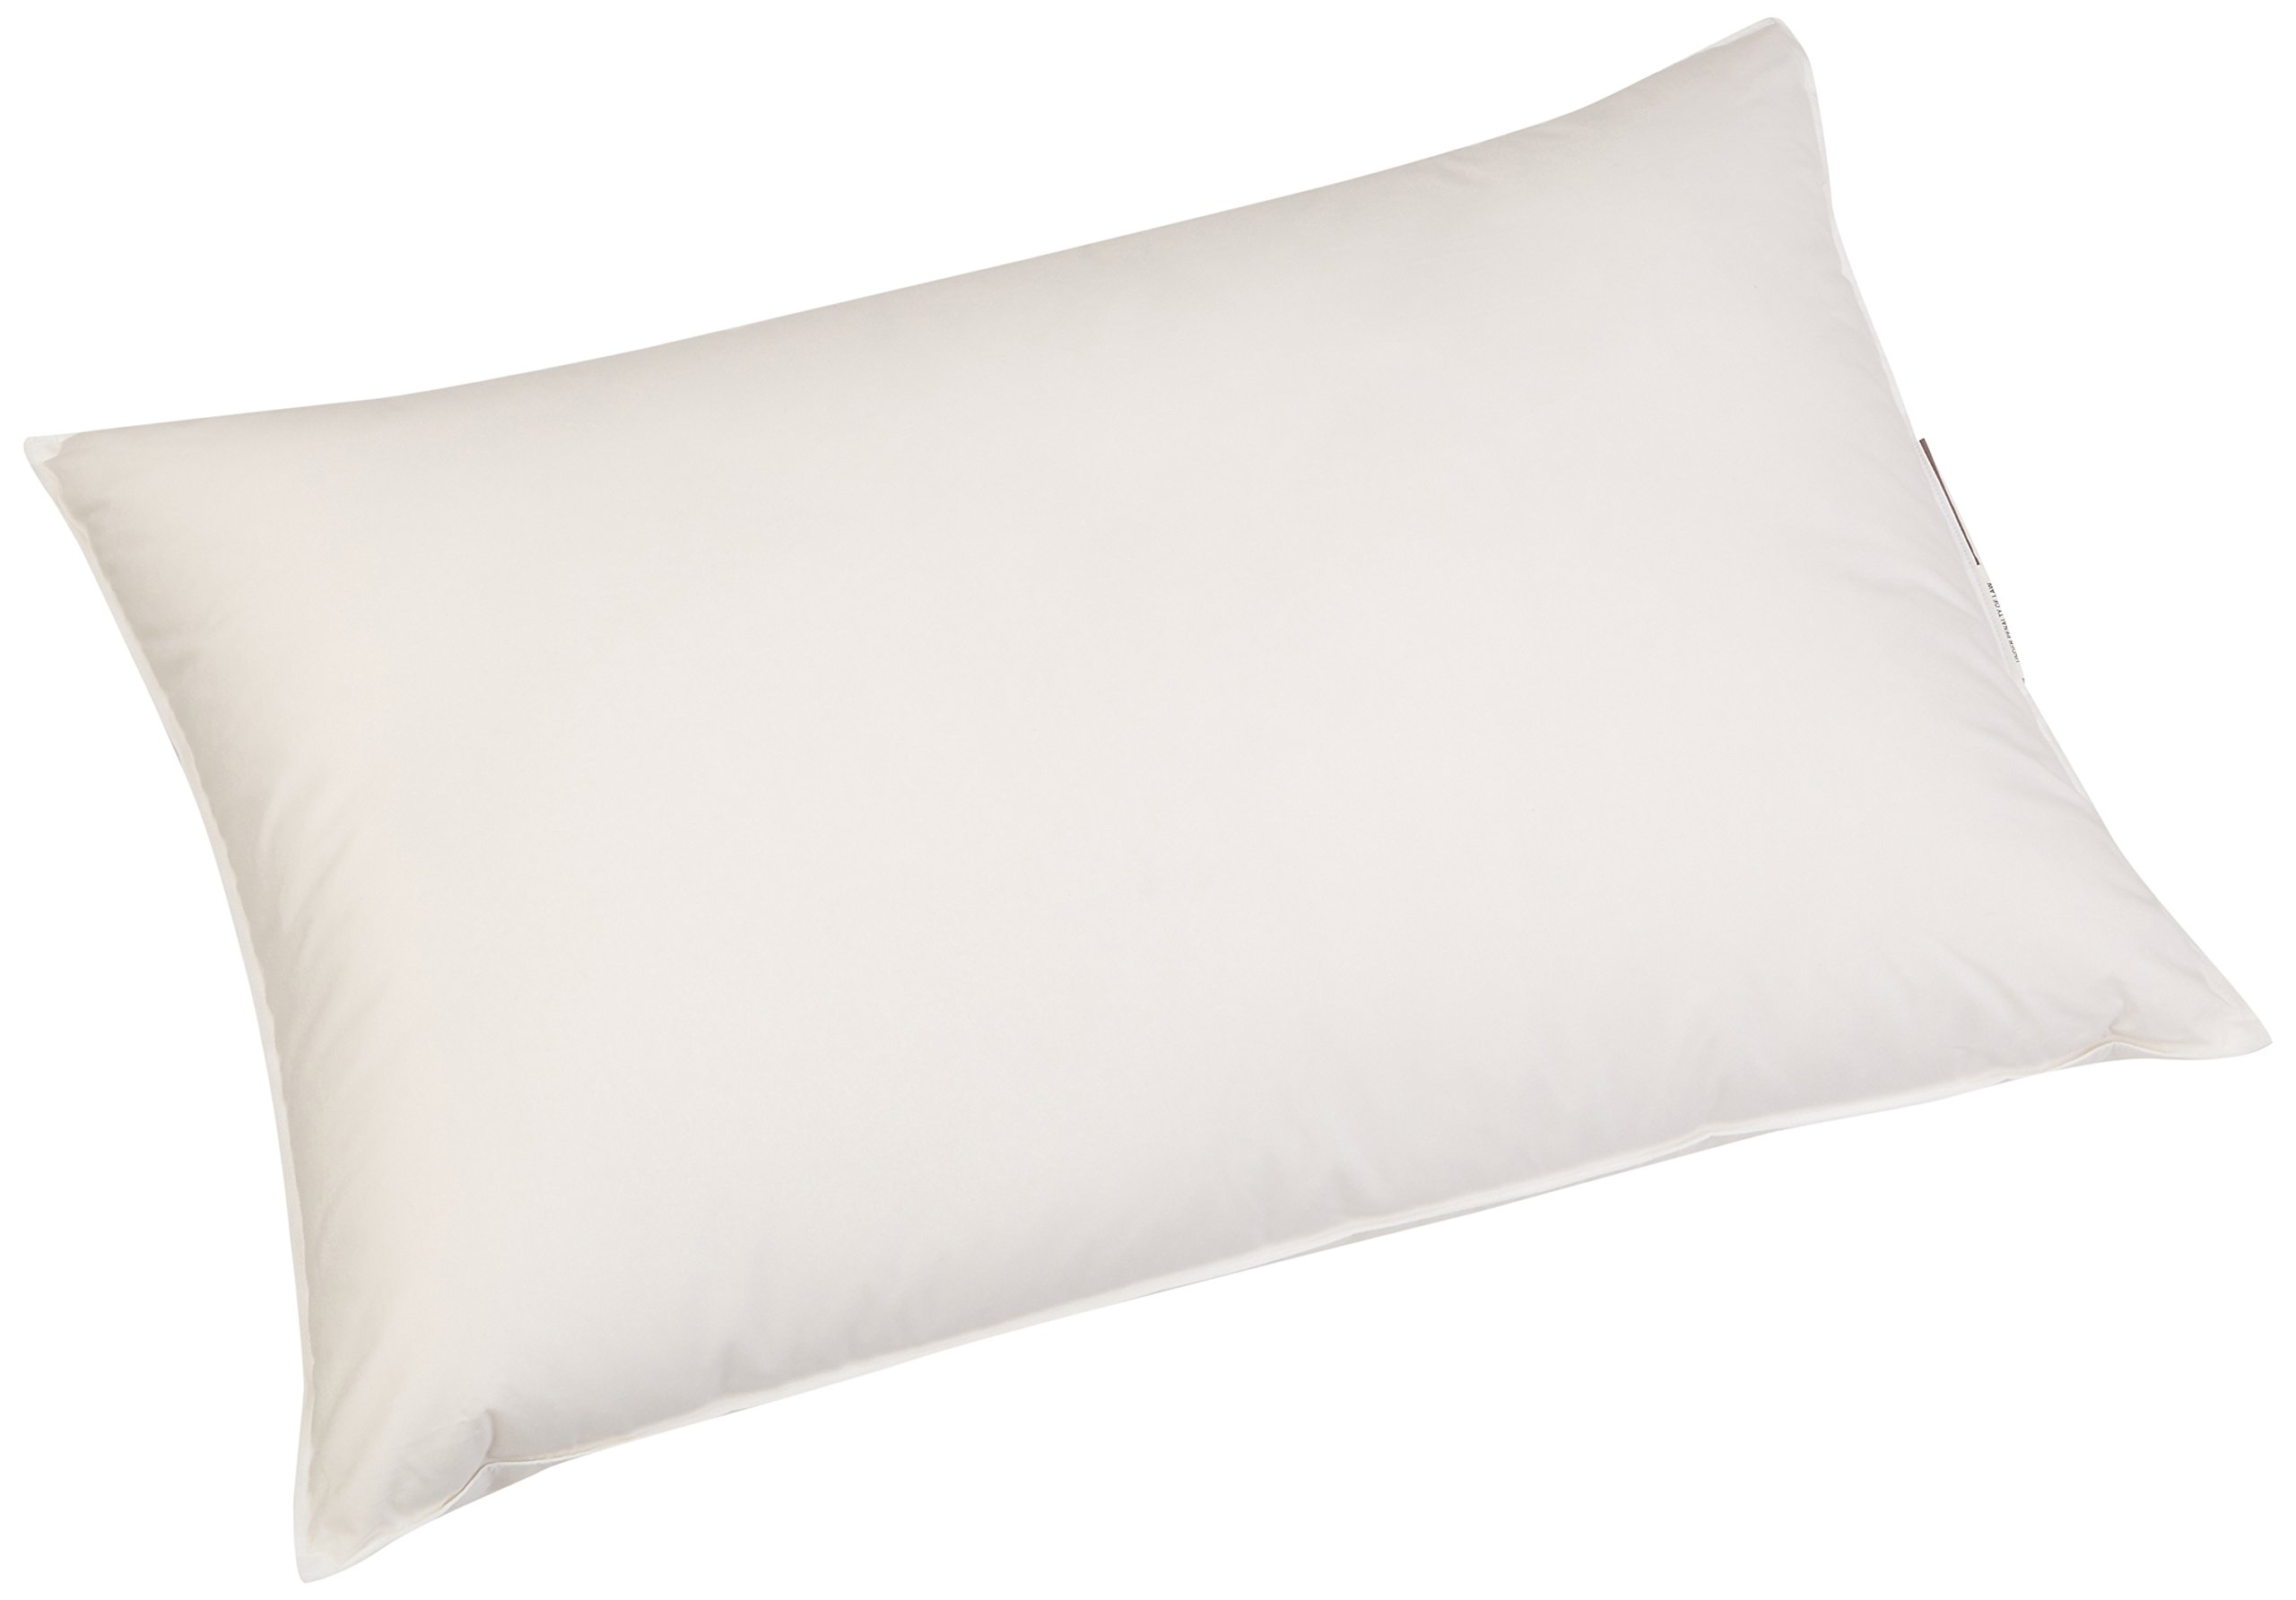 Coyuchi Feather/Down Pillow Insert, Queen, White by Coyuchi